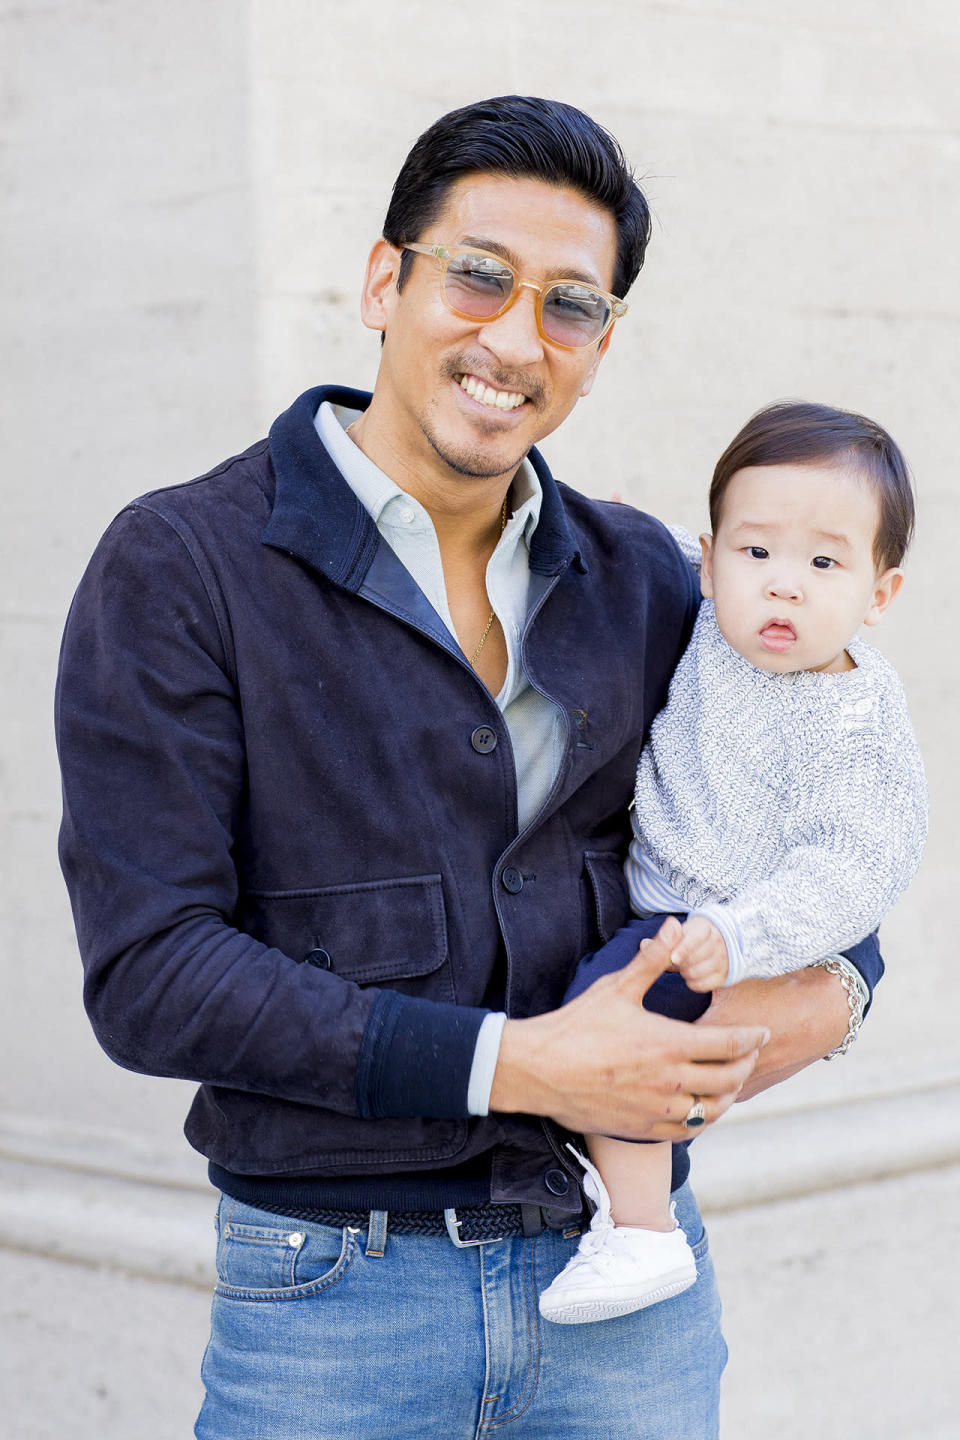 <p><b>Yahoo Style:</b> How'd you start going to church?<br><b>P.J. Park:</b> A friend of mine from Korea, where I'm from, introduced me to this church, so we started coming and loved it. My wife and I were looking for a more diverse, open, not so in-the-box, welcoming place. The pastor here and his sermons are great. It's uplifting and about celebrating the word of Jesus. I'm on one of the service teams, so I come early and help people in the parking lot. </p><p><b>How does your faith inform your gallery work?<br></b>Every day I start with Bible study, then I go to work and try to serve and help people like my employees. I don't expect them to clean up. I do it myself.</p><p><b>Is there a role for Jesus in contemporary art?<br></b>That's a deep one! I don't know if I can answer that right now. But there's a role for Christ in everything.</p>